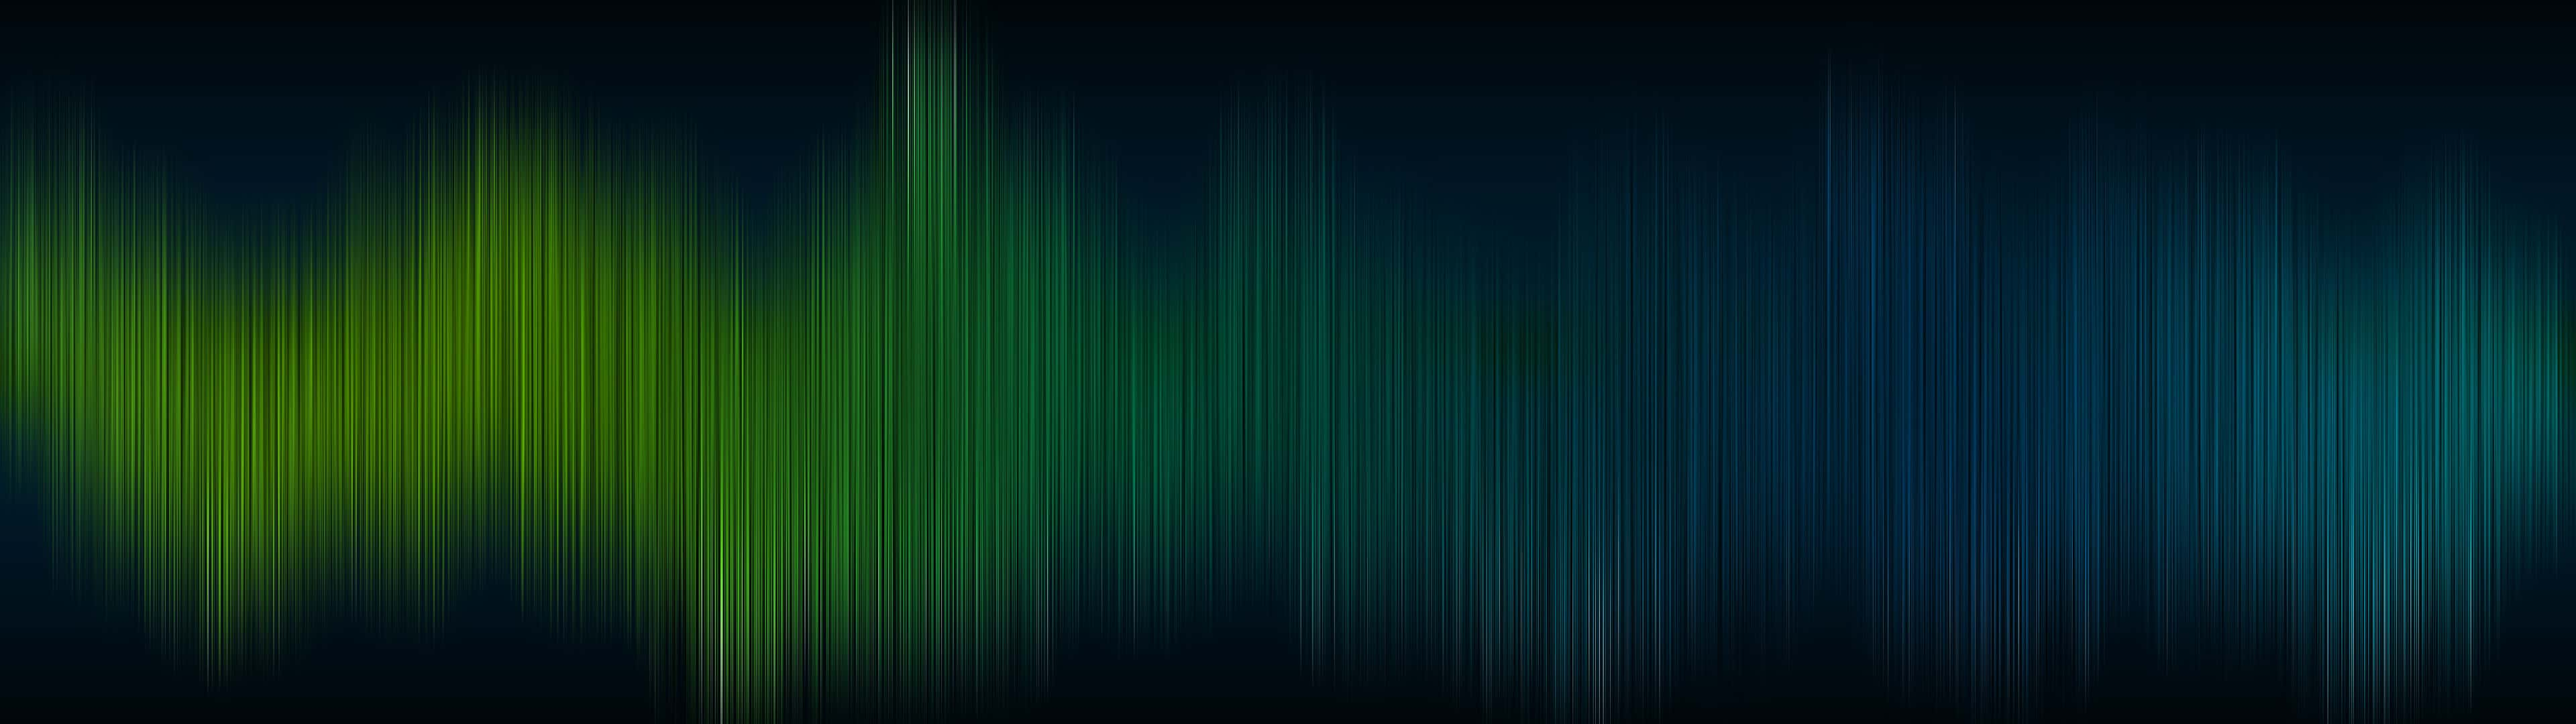 Line Pattern Green And Blue Dual Monitor Wallpaper - Black And Green - HD Wallpaper